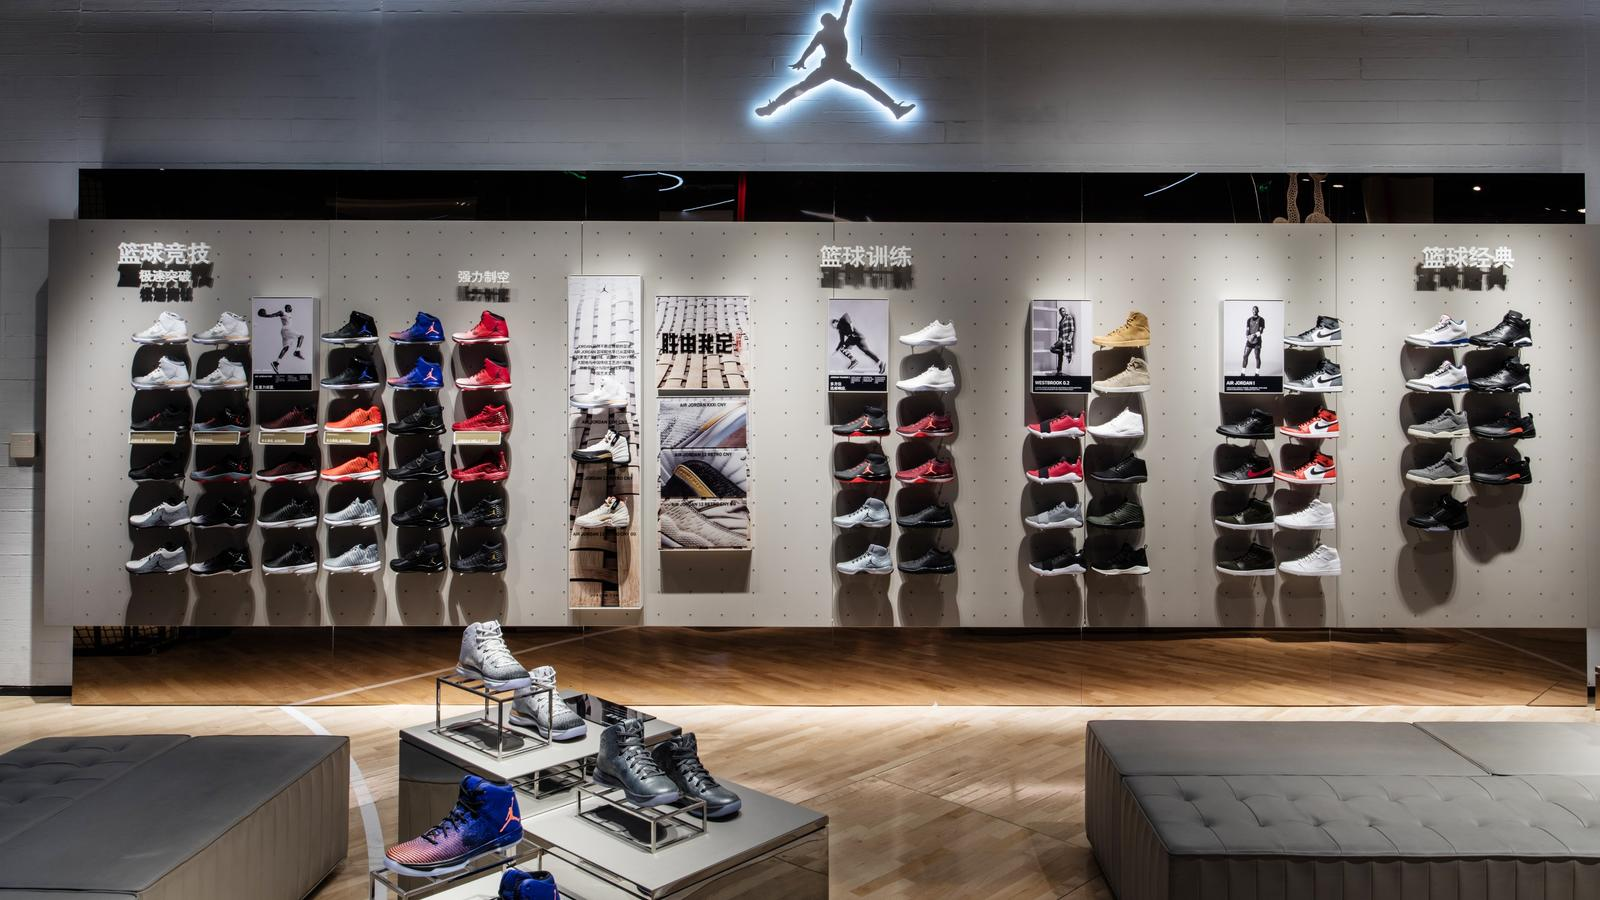 First Jordan Basketball amp; The Look Inside Nike In Experience Store XYPwXrqvF